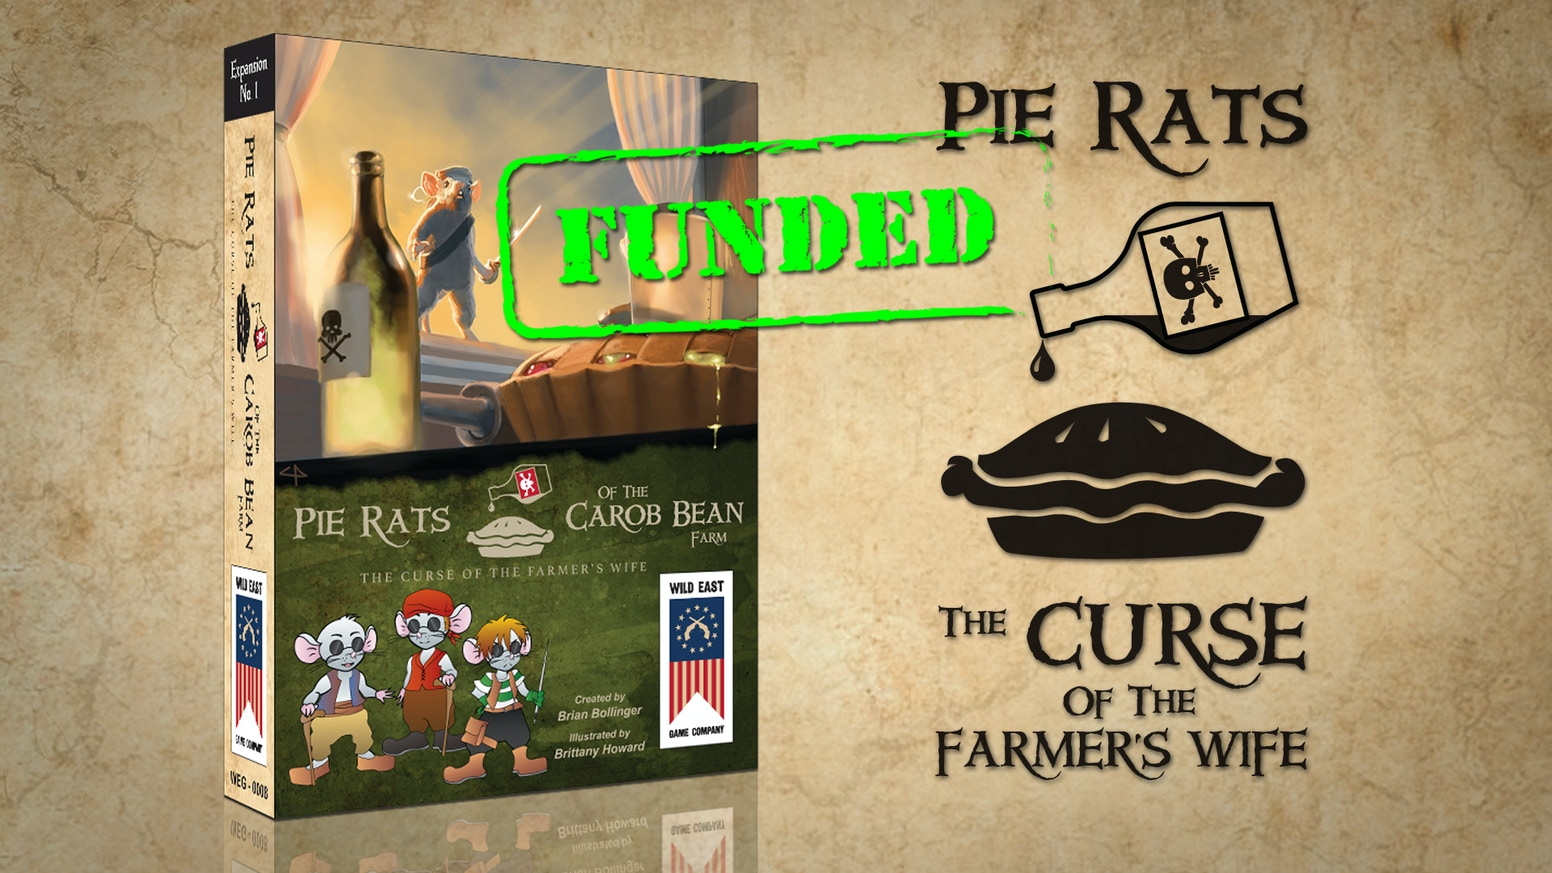 Curse of the Farmer's Wife - an expansion for the game Pie Rats of the Carob Bean Farm.